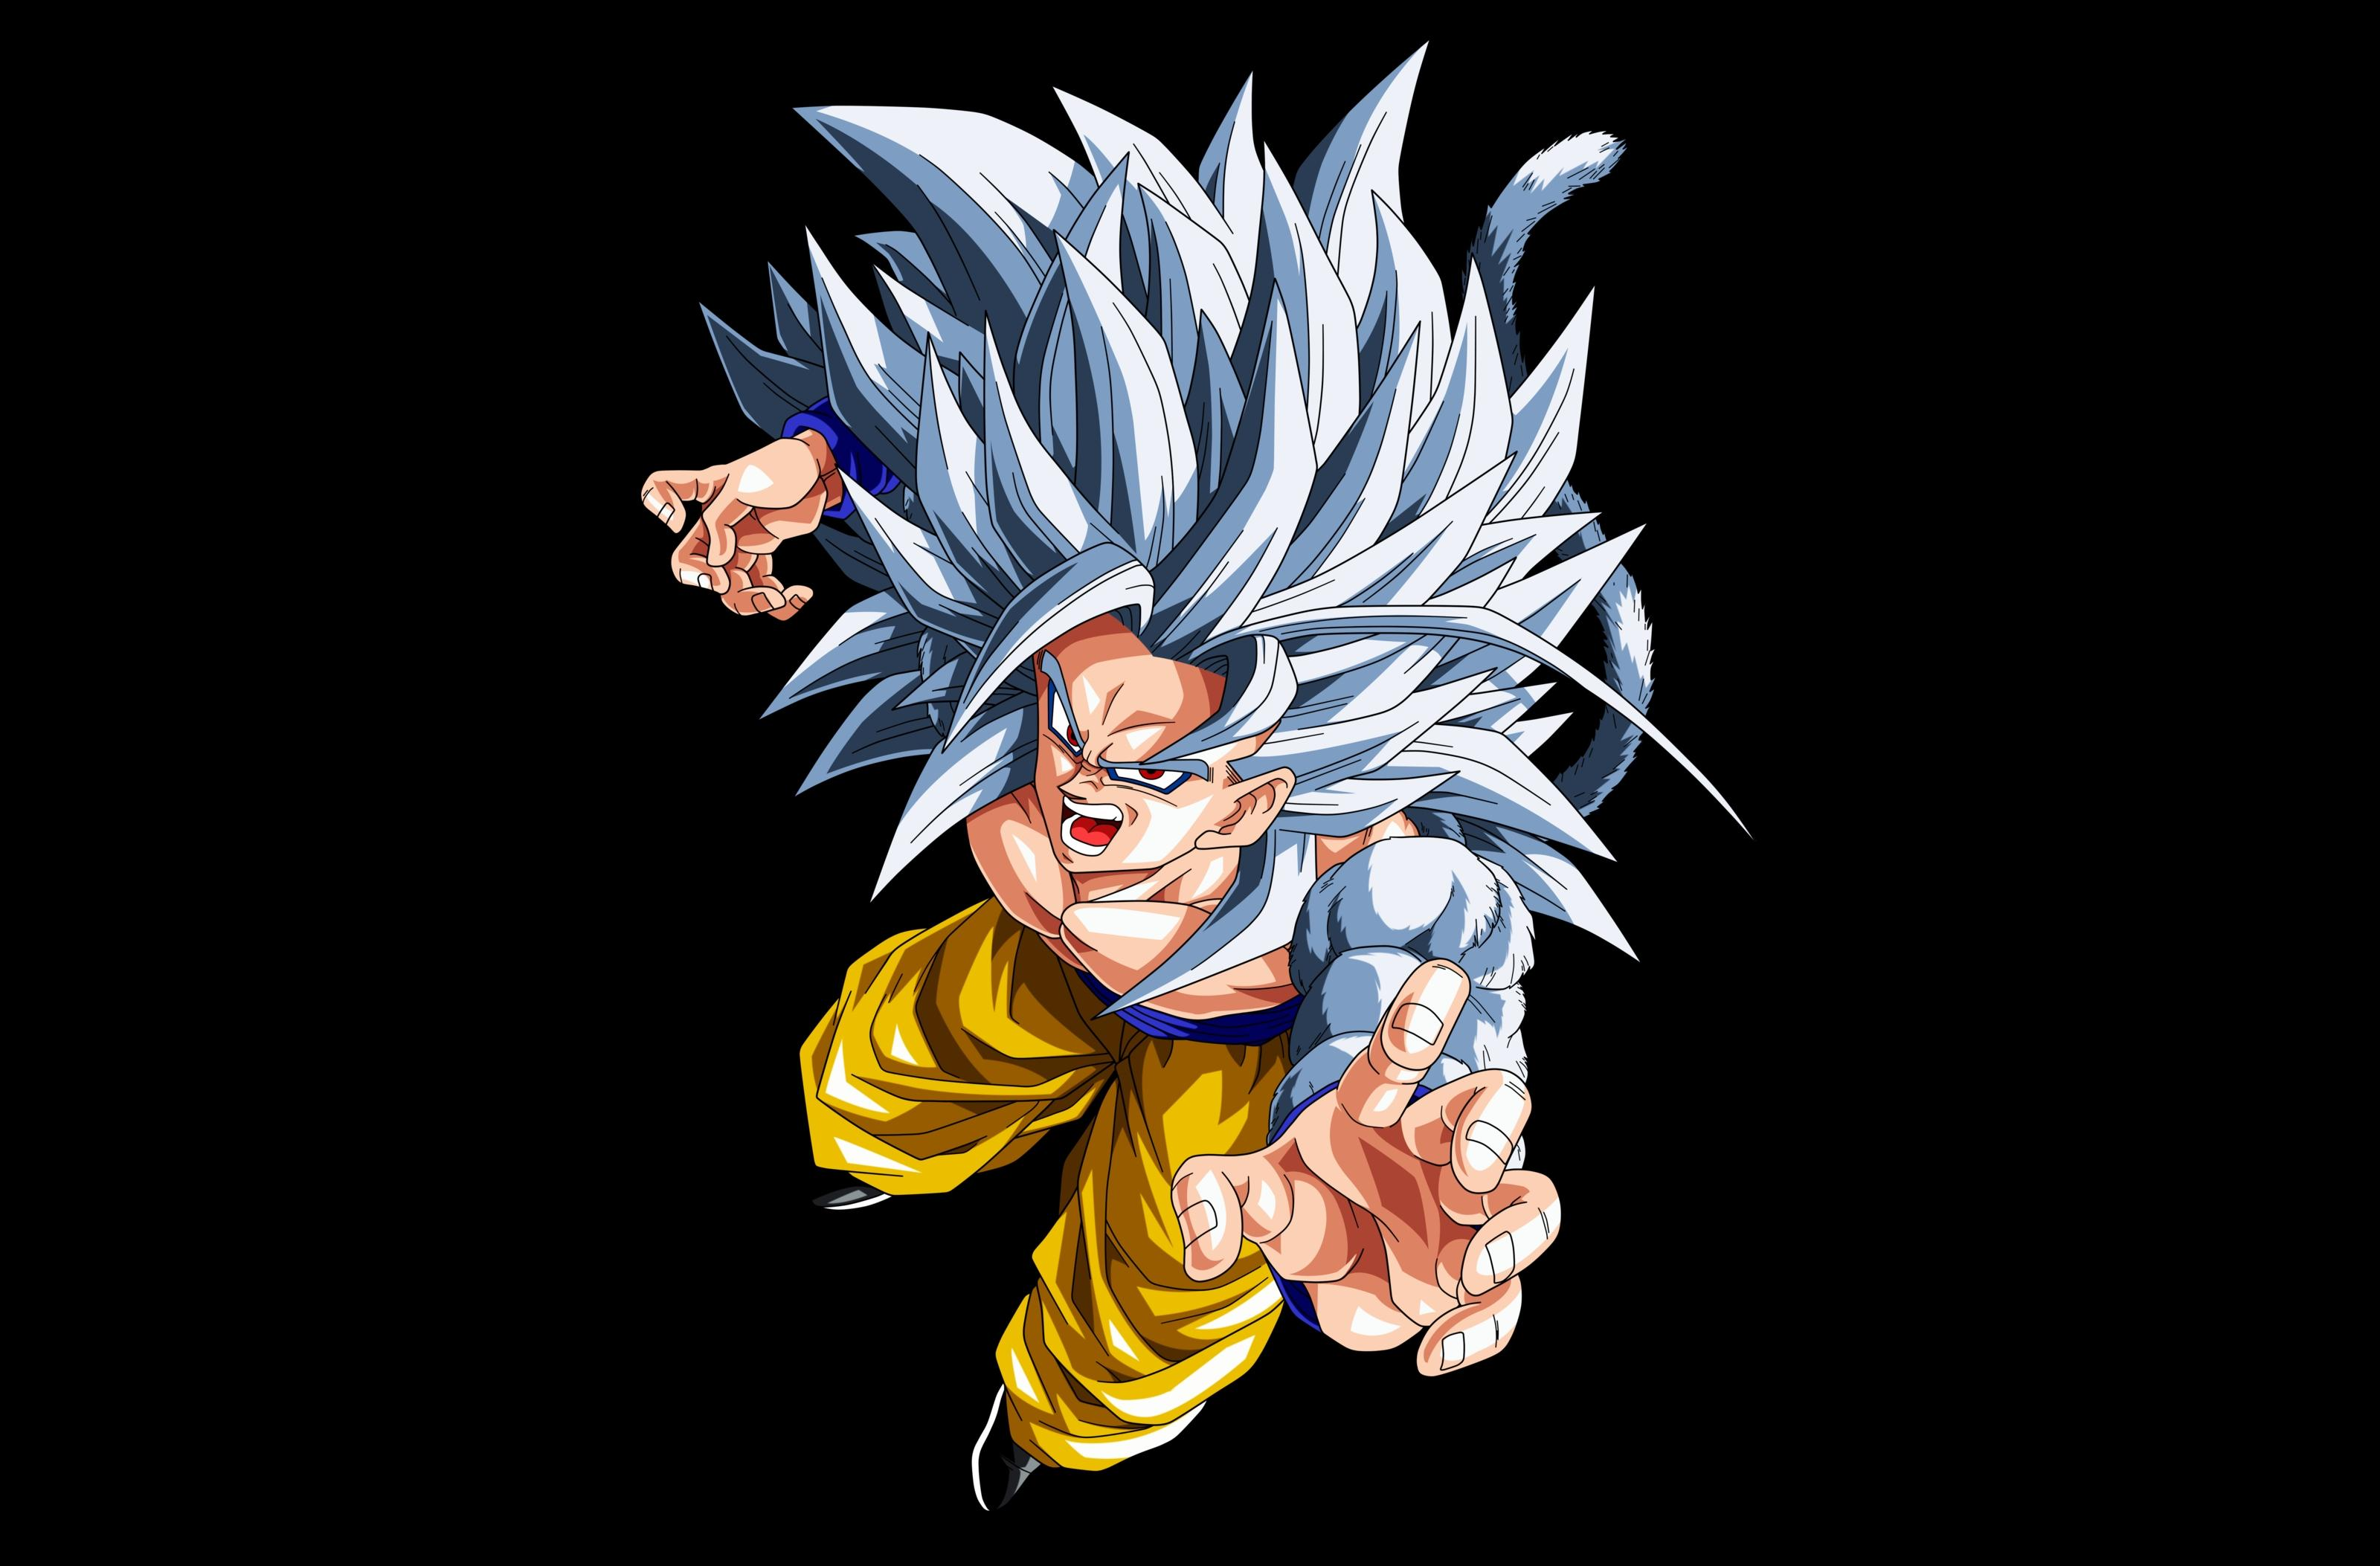 Super saiyan goku wallpaper wallpapersafari - Goku vs vegeta super saiyan 5 ...